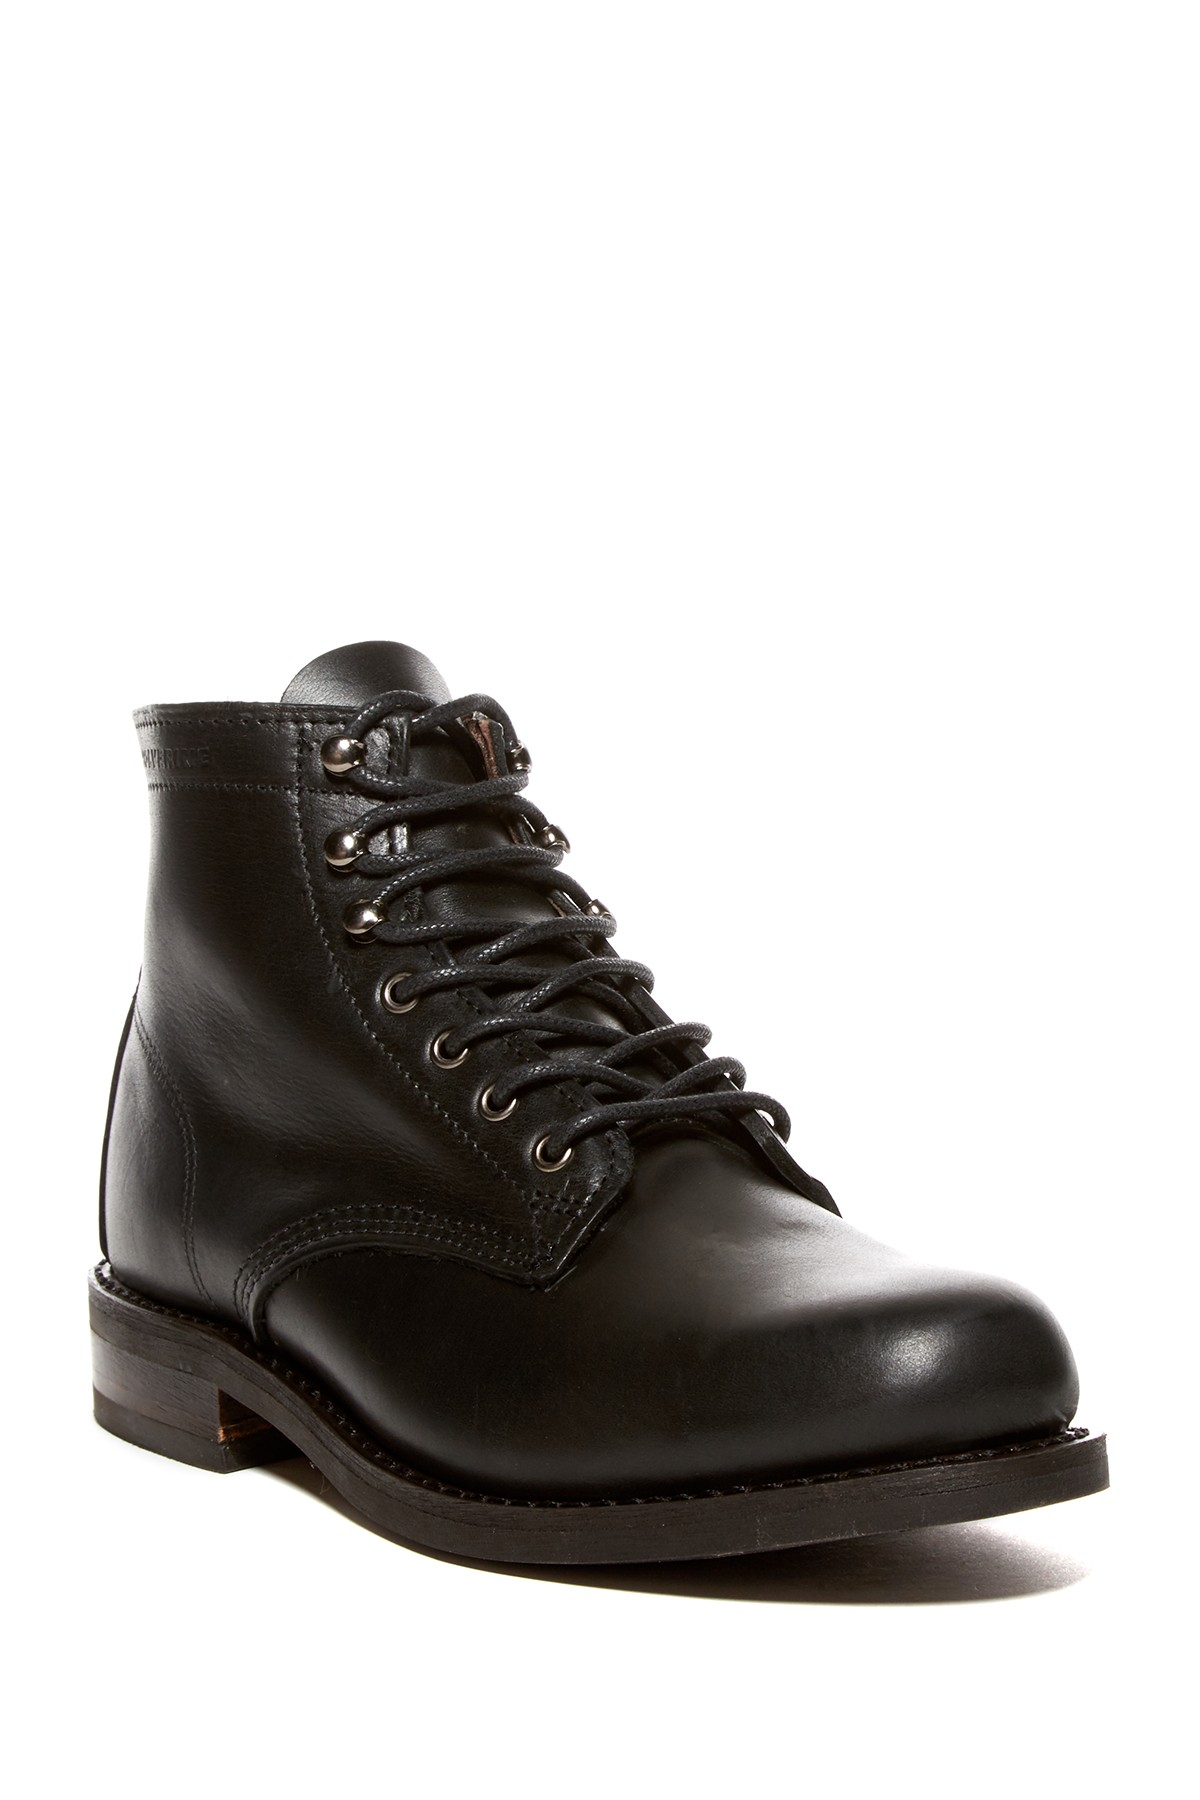 Wolverine Zeb Lace Up Boot In Black For Men Lyst